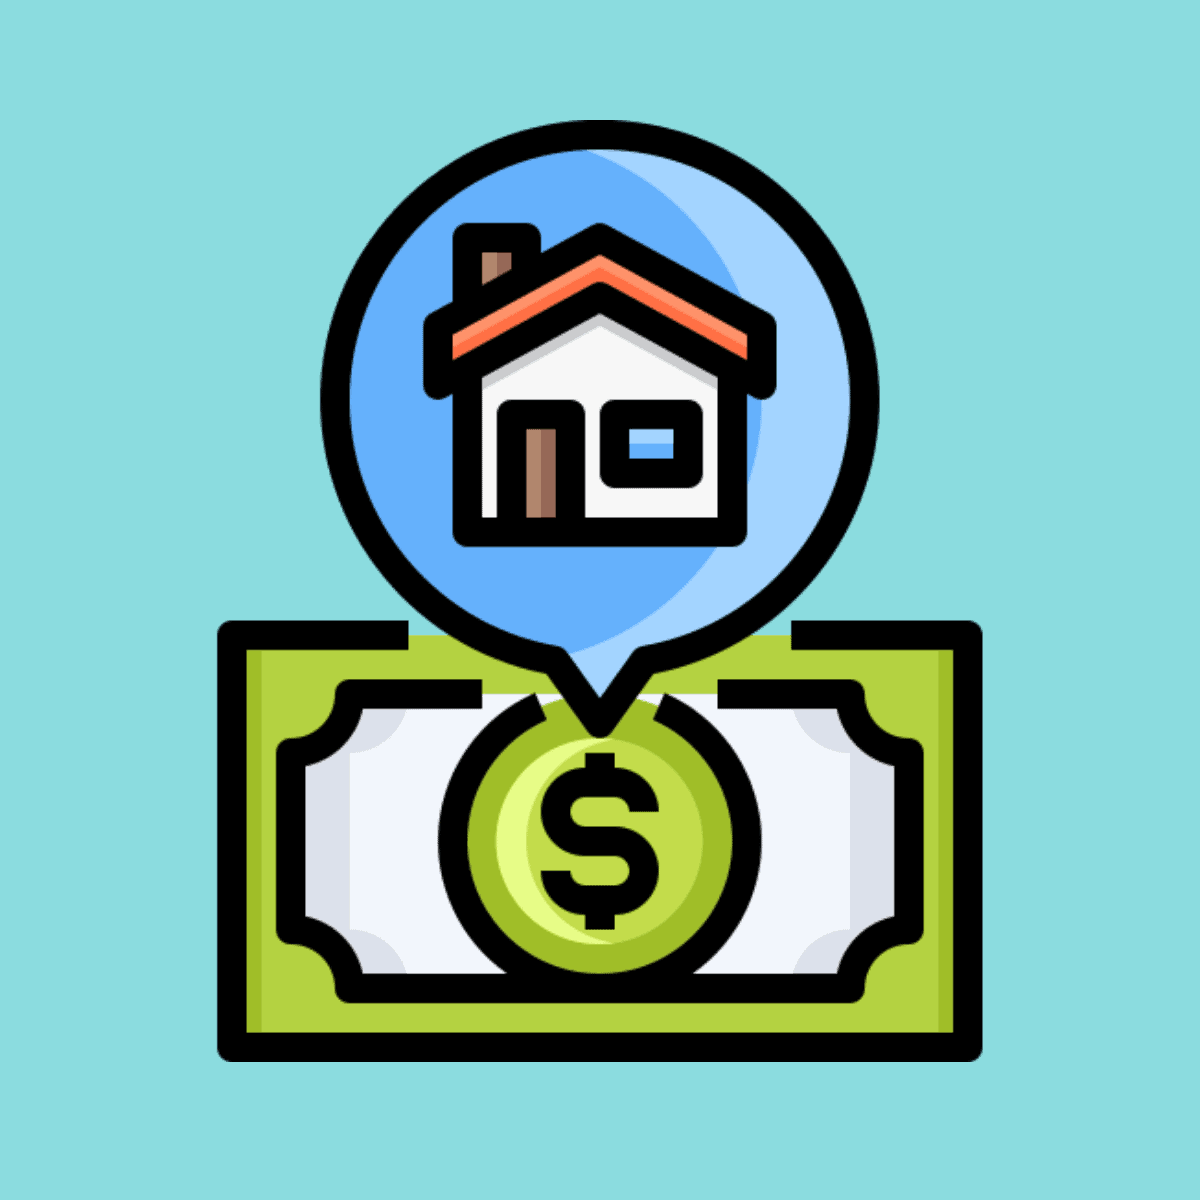 Can You Qualify For a Mortgage While in a Consumer Proposal?